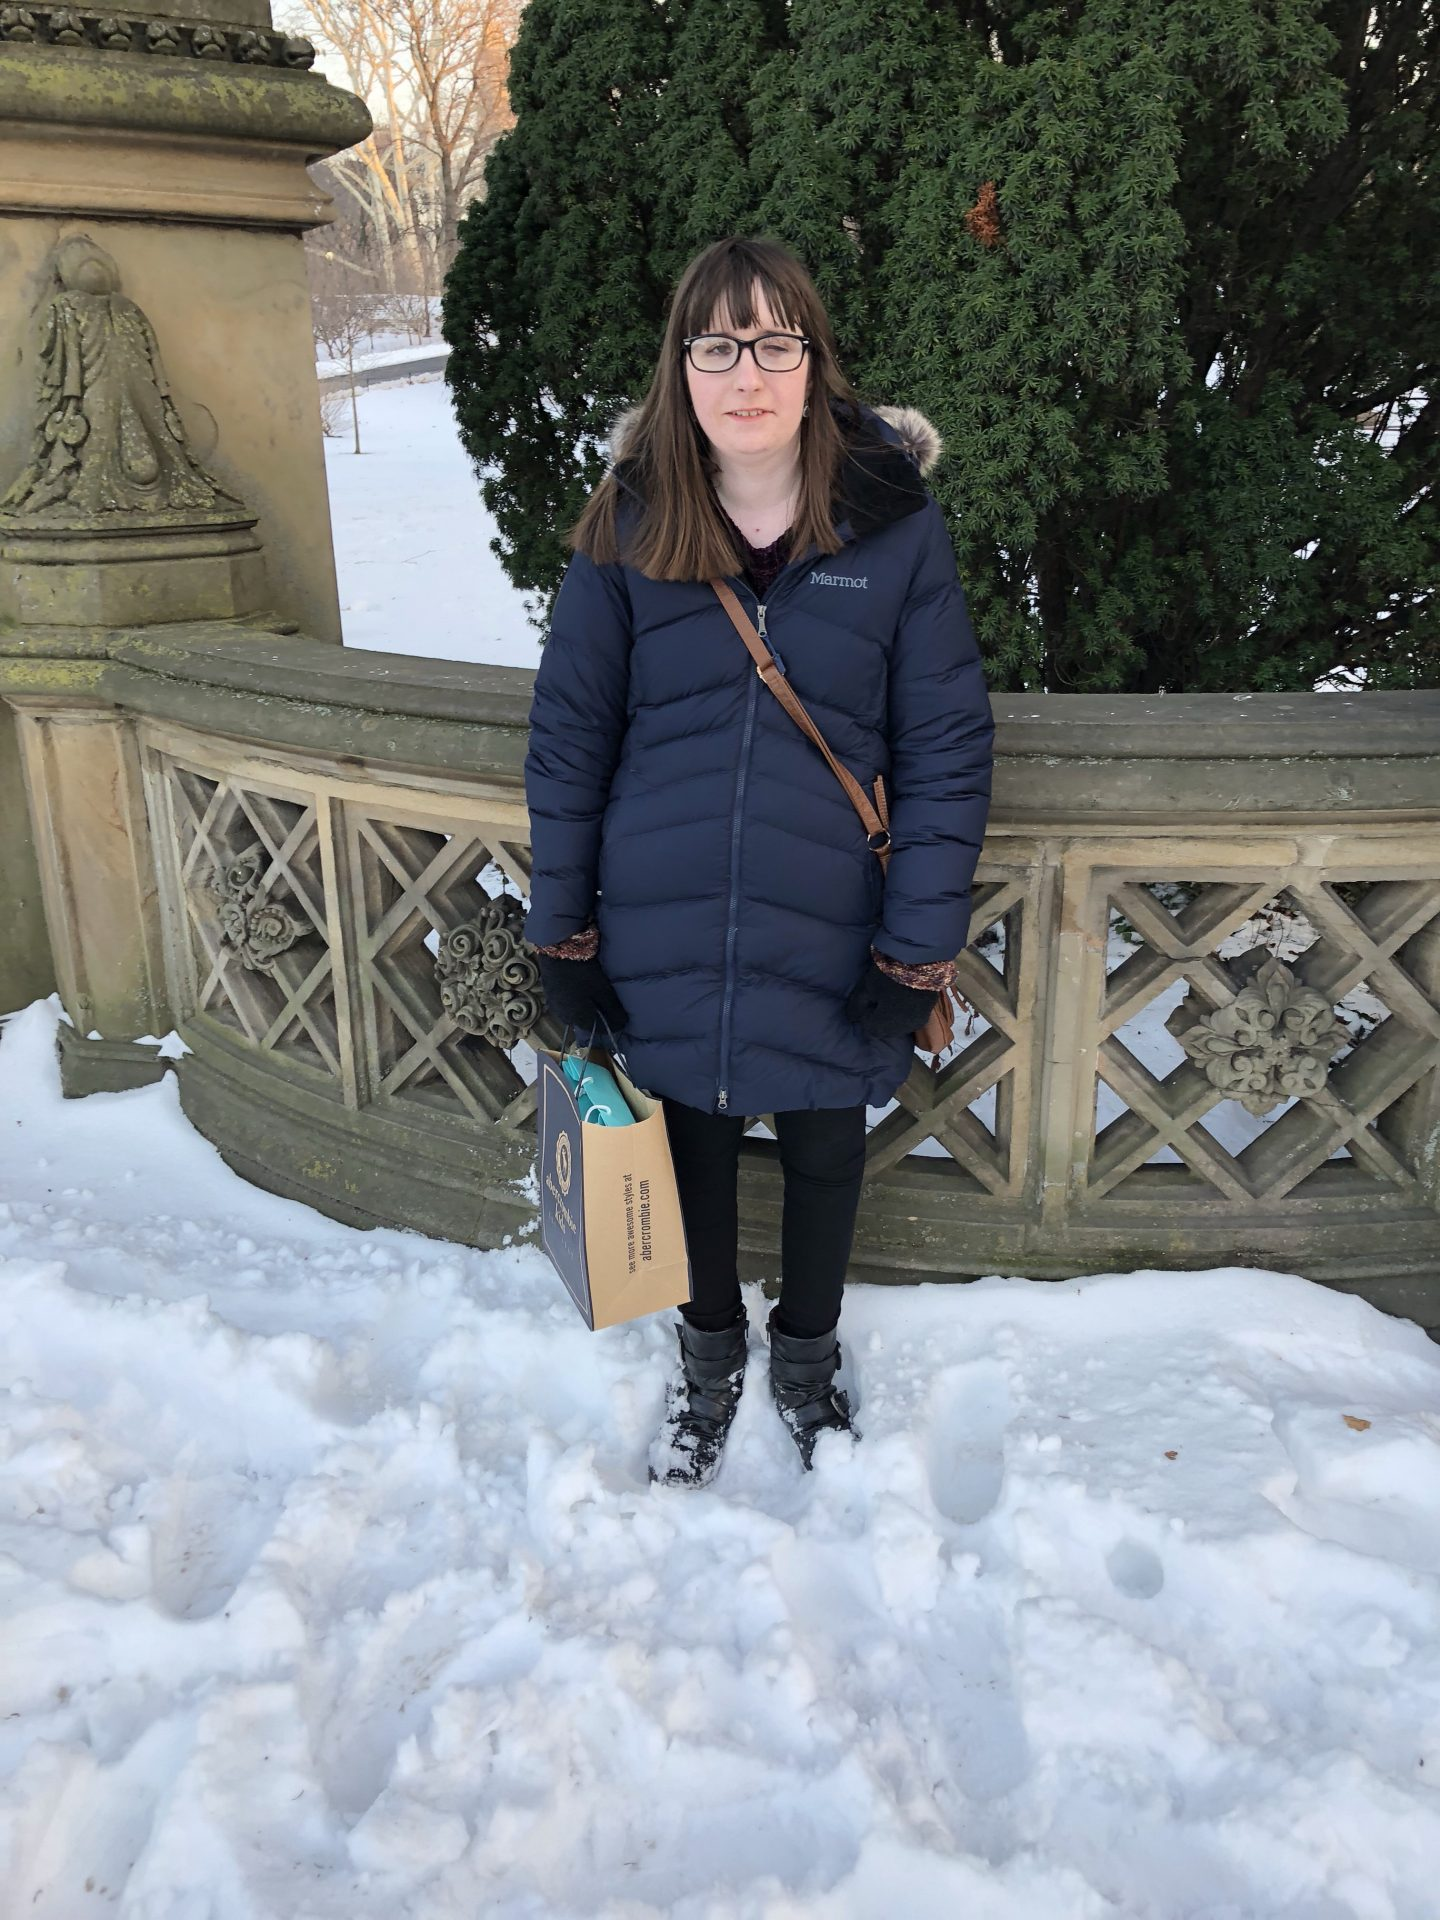 A photo of Holly in a snowy Central Park